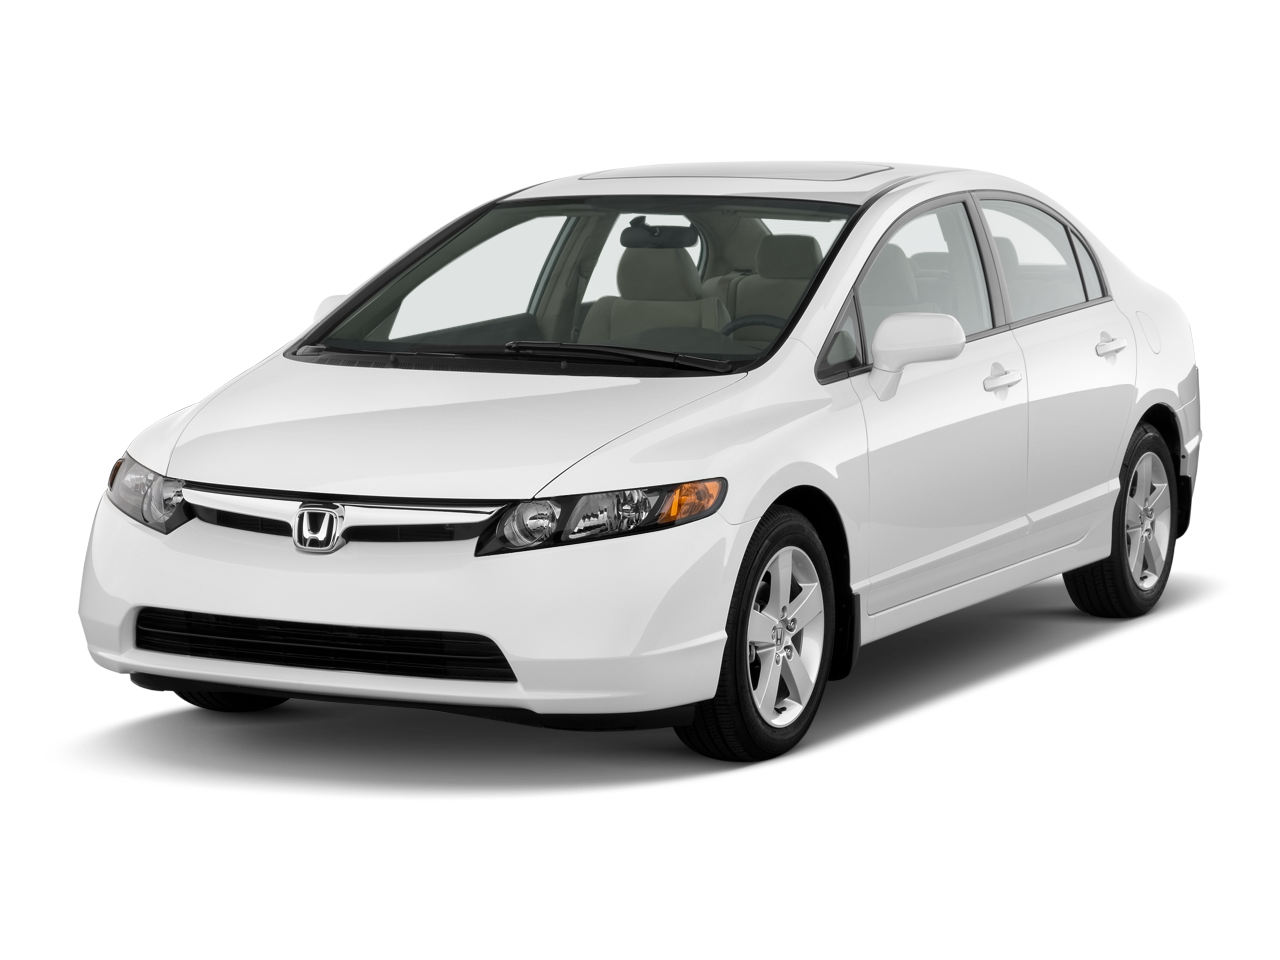 2008 honda civic mugen si photo gallery photo galleries videos and multimedia features. Black Bedroom Furniture Sets. Home Design Ideas